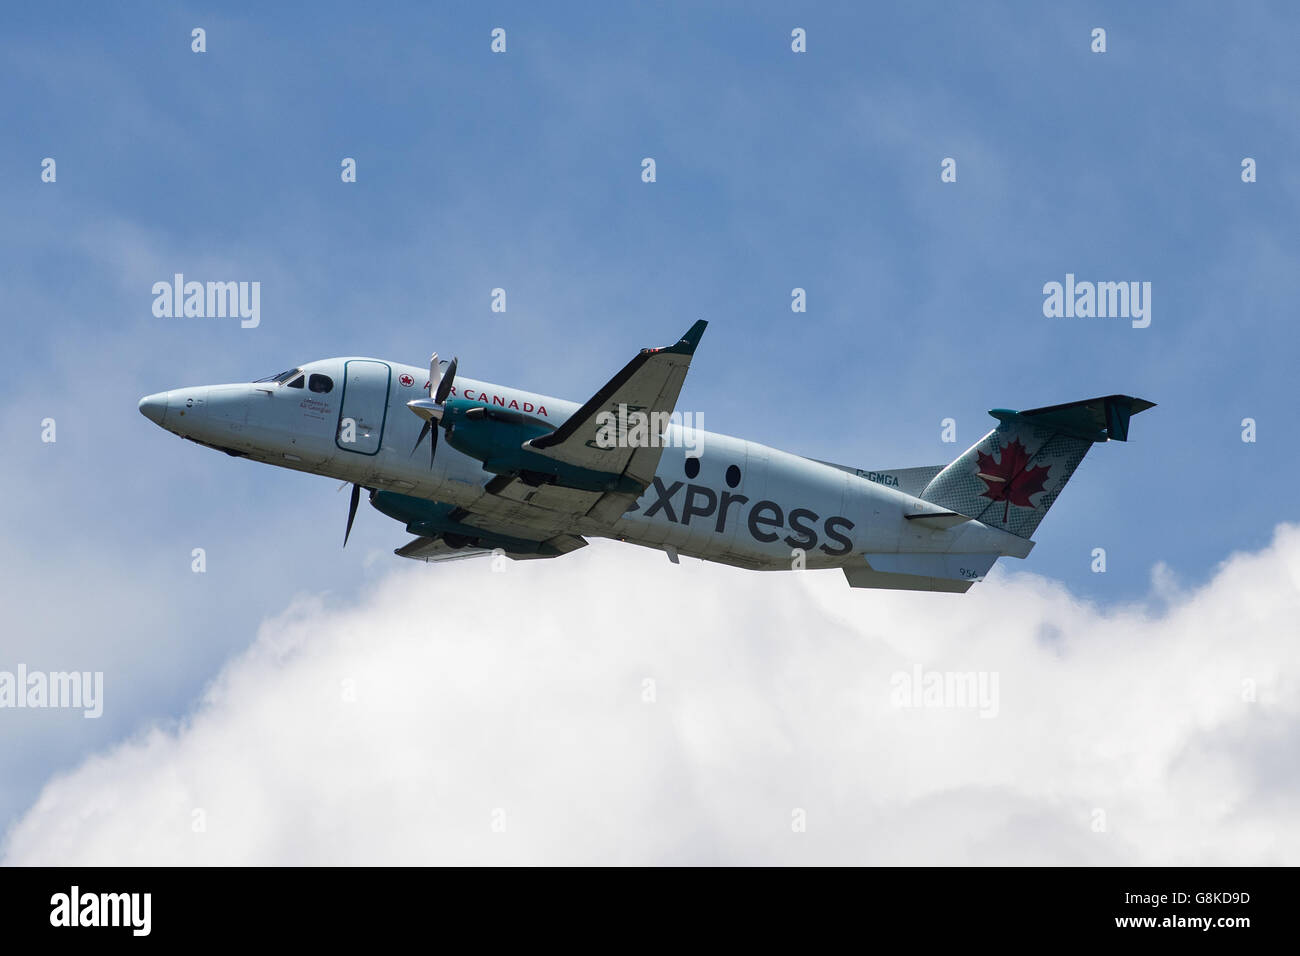 Air Canada Express Beechcraft 1900D aircraft, operated by Georgian air takes off from Norman Rogers airport in Kingston, - Stock Image